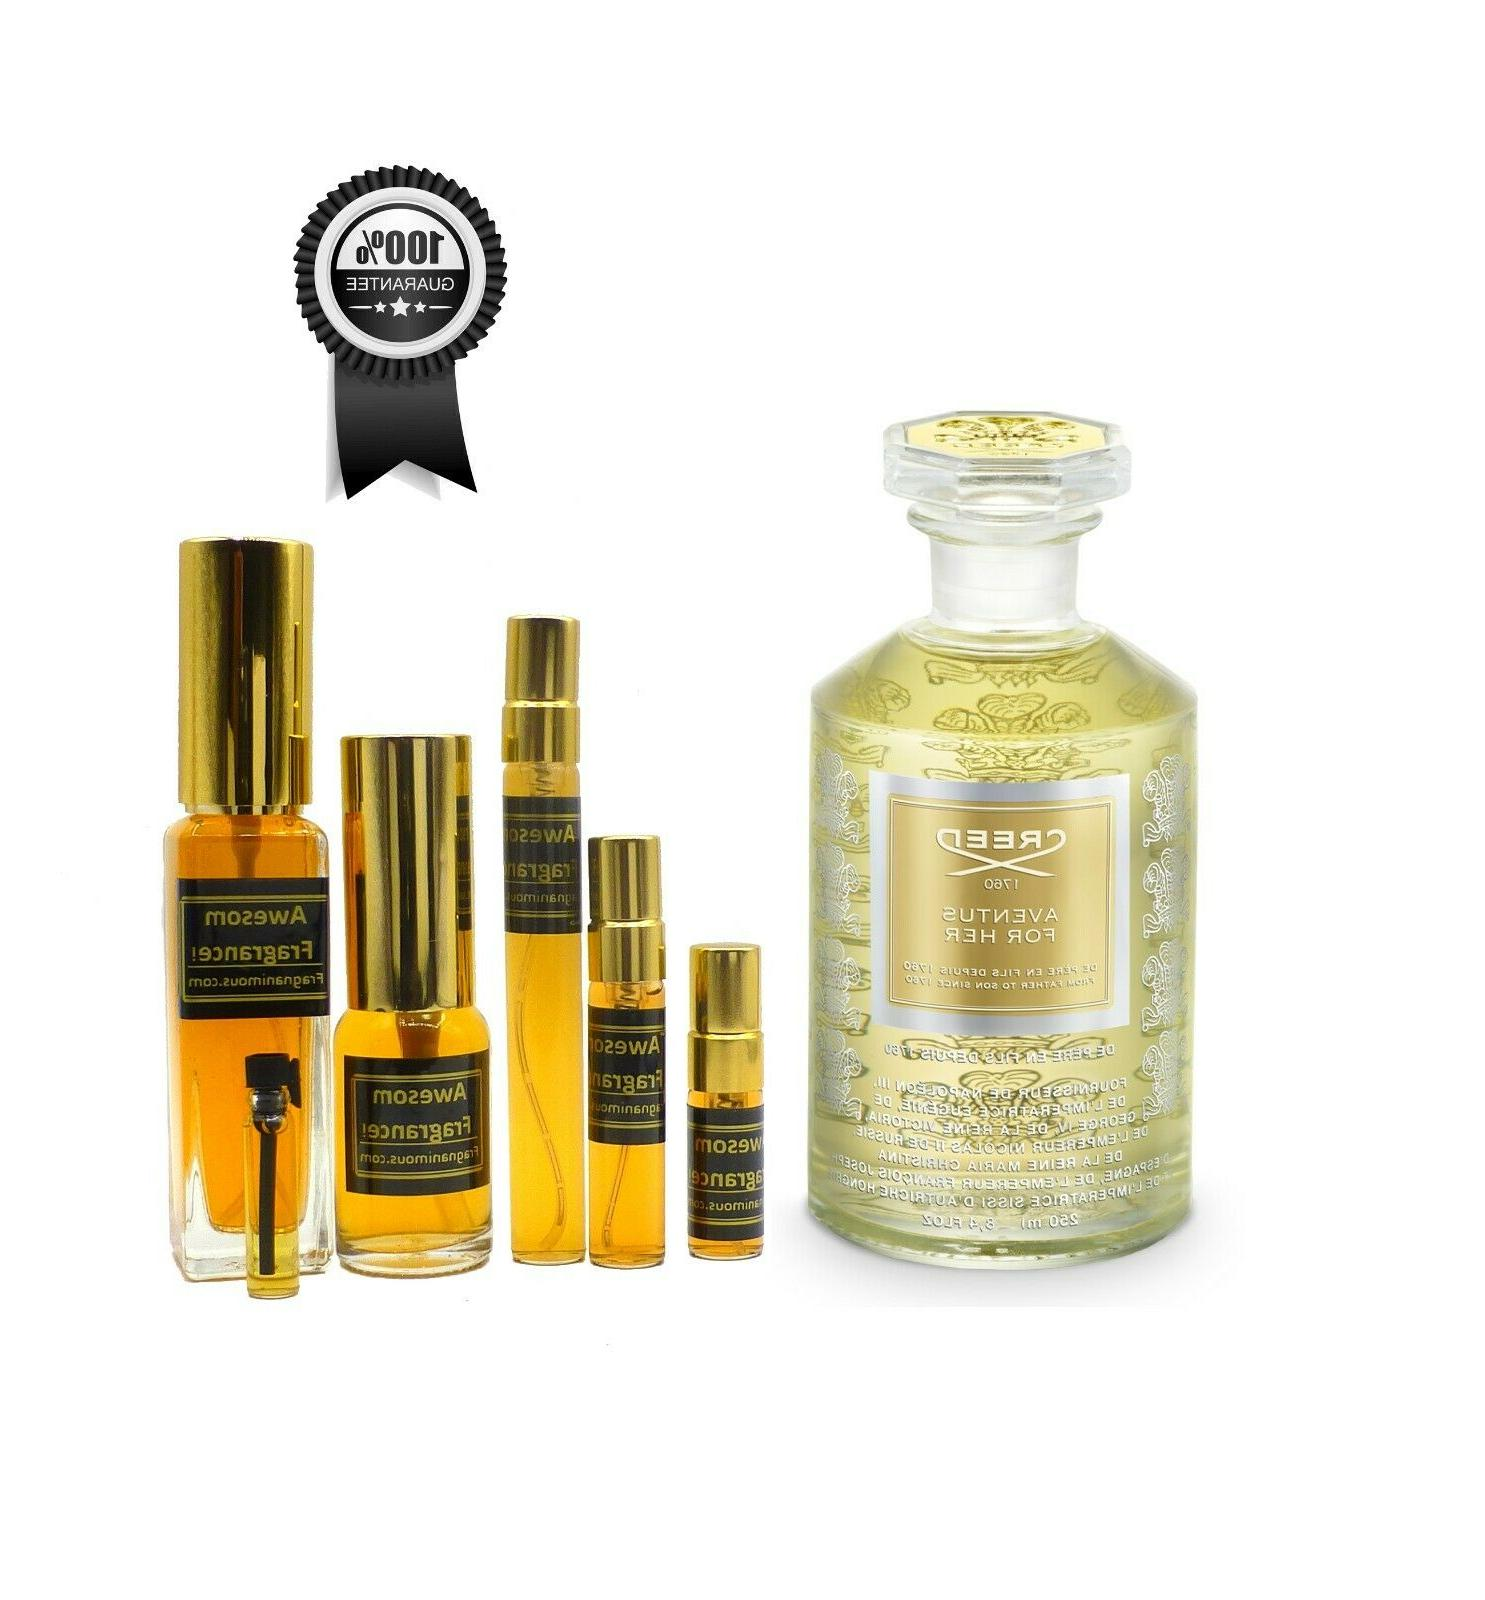 aventus for her decants samples includes free